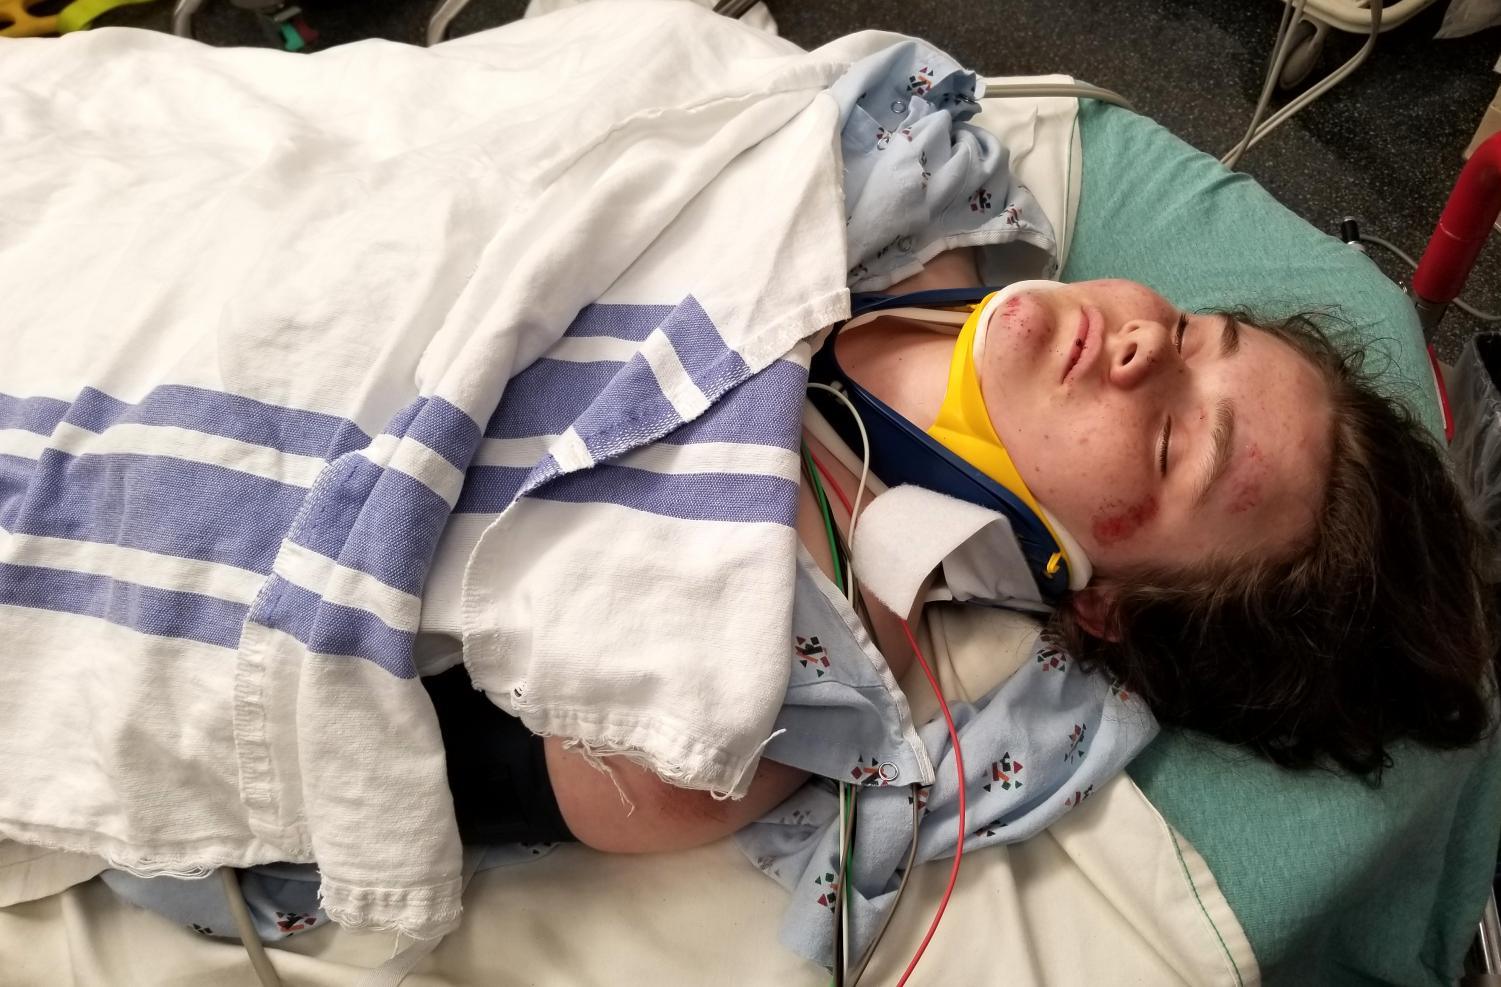 Senior Della Simonson in the St. Luke's Emergency room after her accident on May 22, 2018.